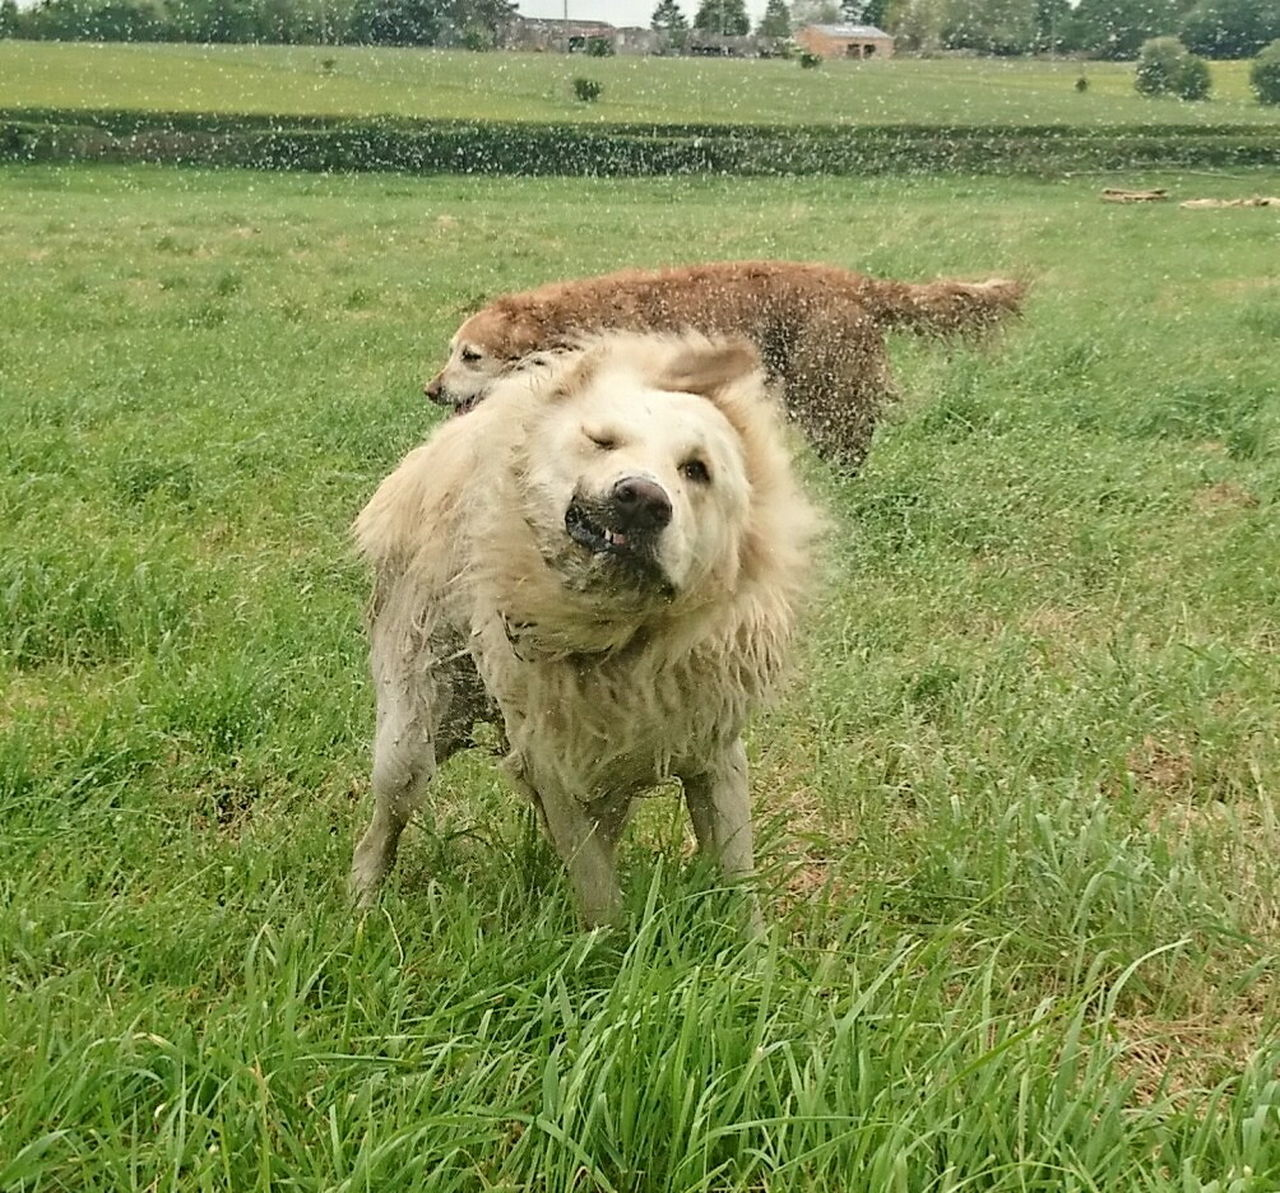 dog, grass, animal themes, domestic animals, field, pets, one animal, mammal, growth, green color, outdoors, day, no people, nature, rural scene